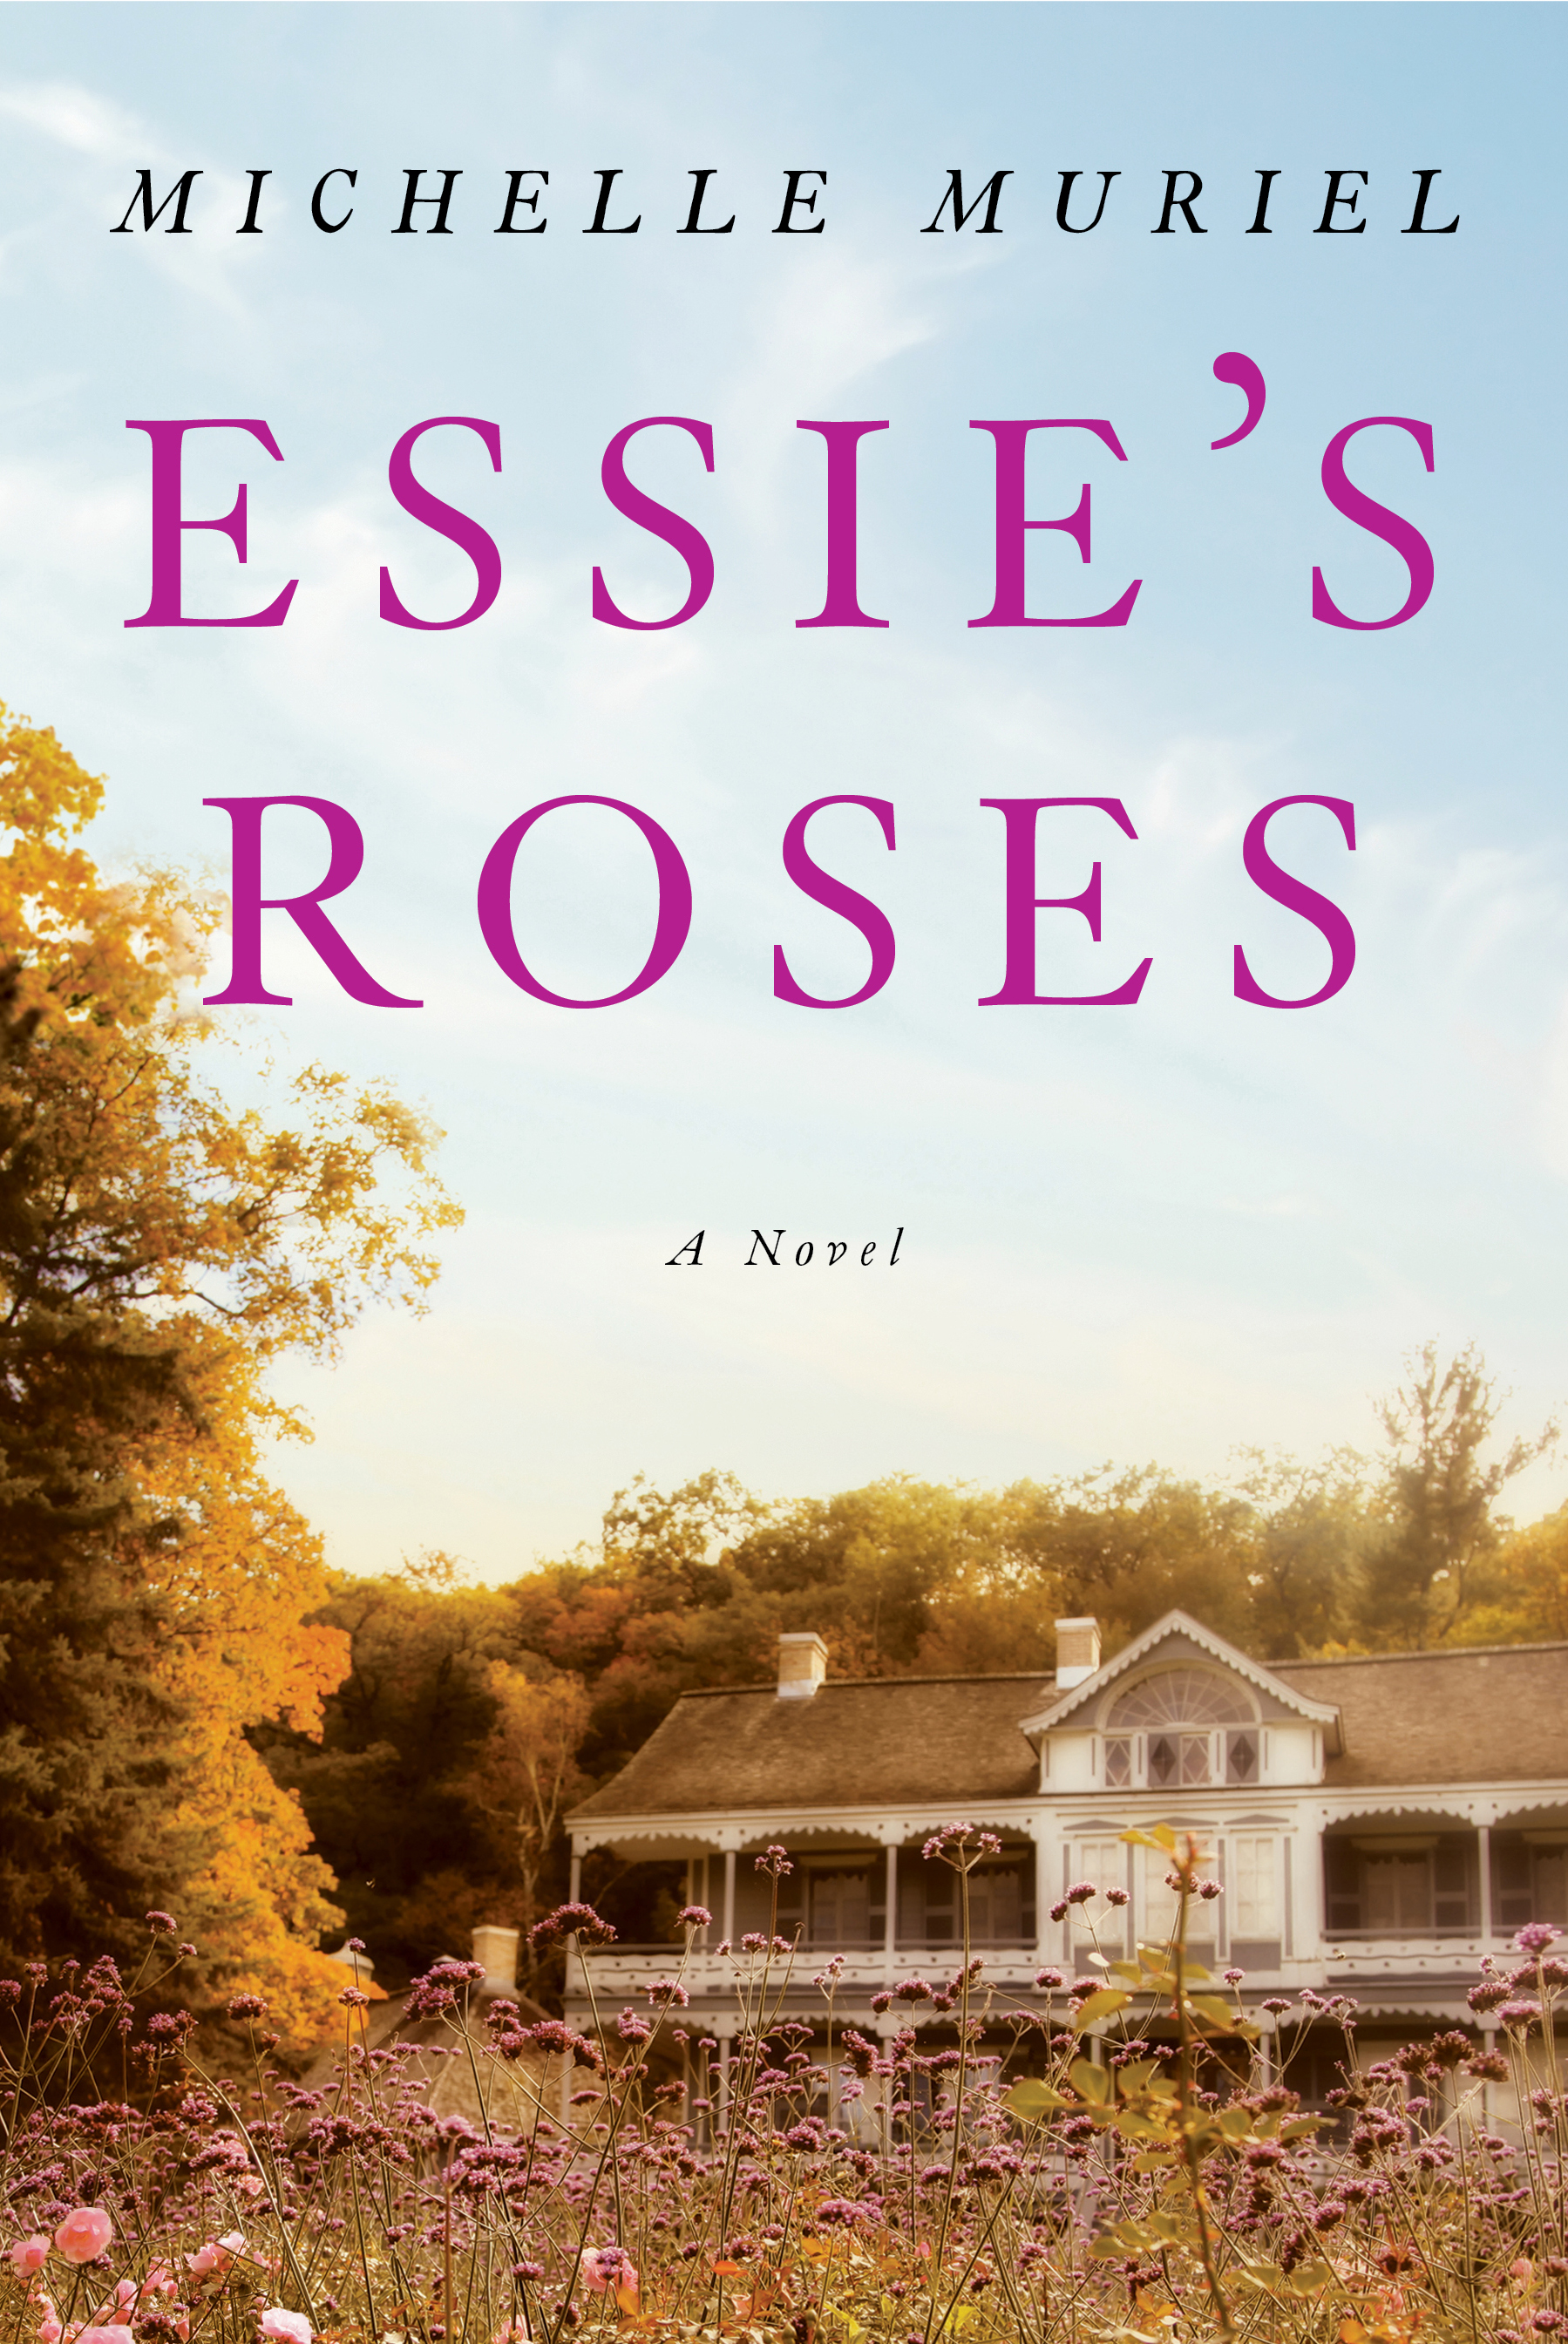 Copyrighted Image Essie's Roses No 1 Bestselling Novel by Michelle Muriel on sale now Learn more at www.michellemuriel.com